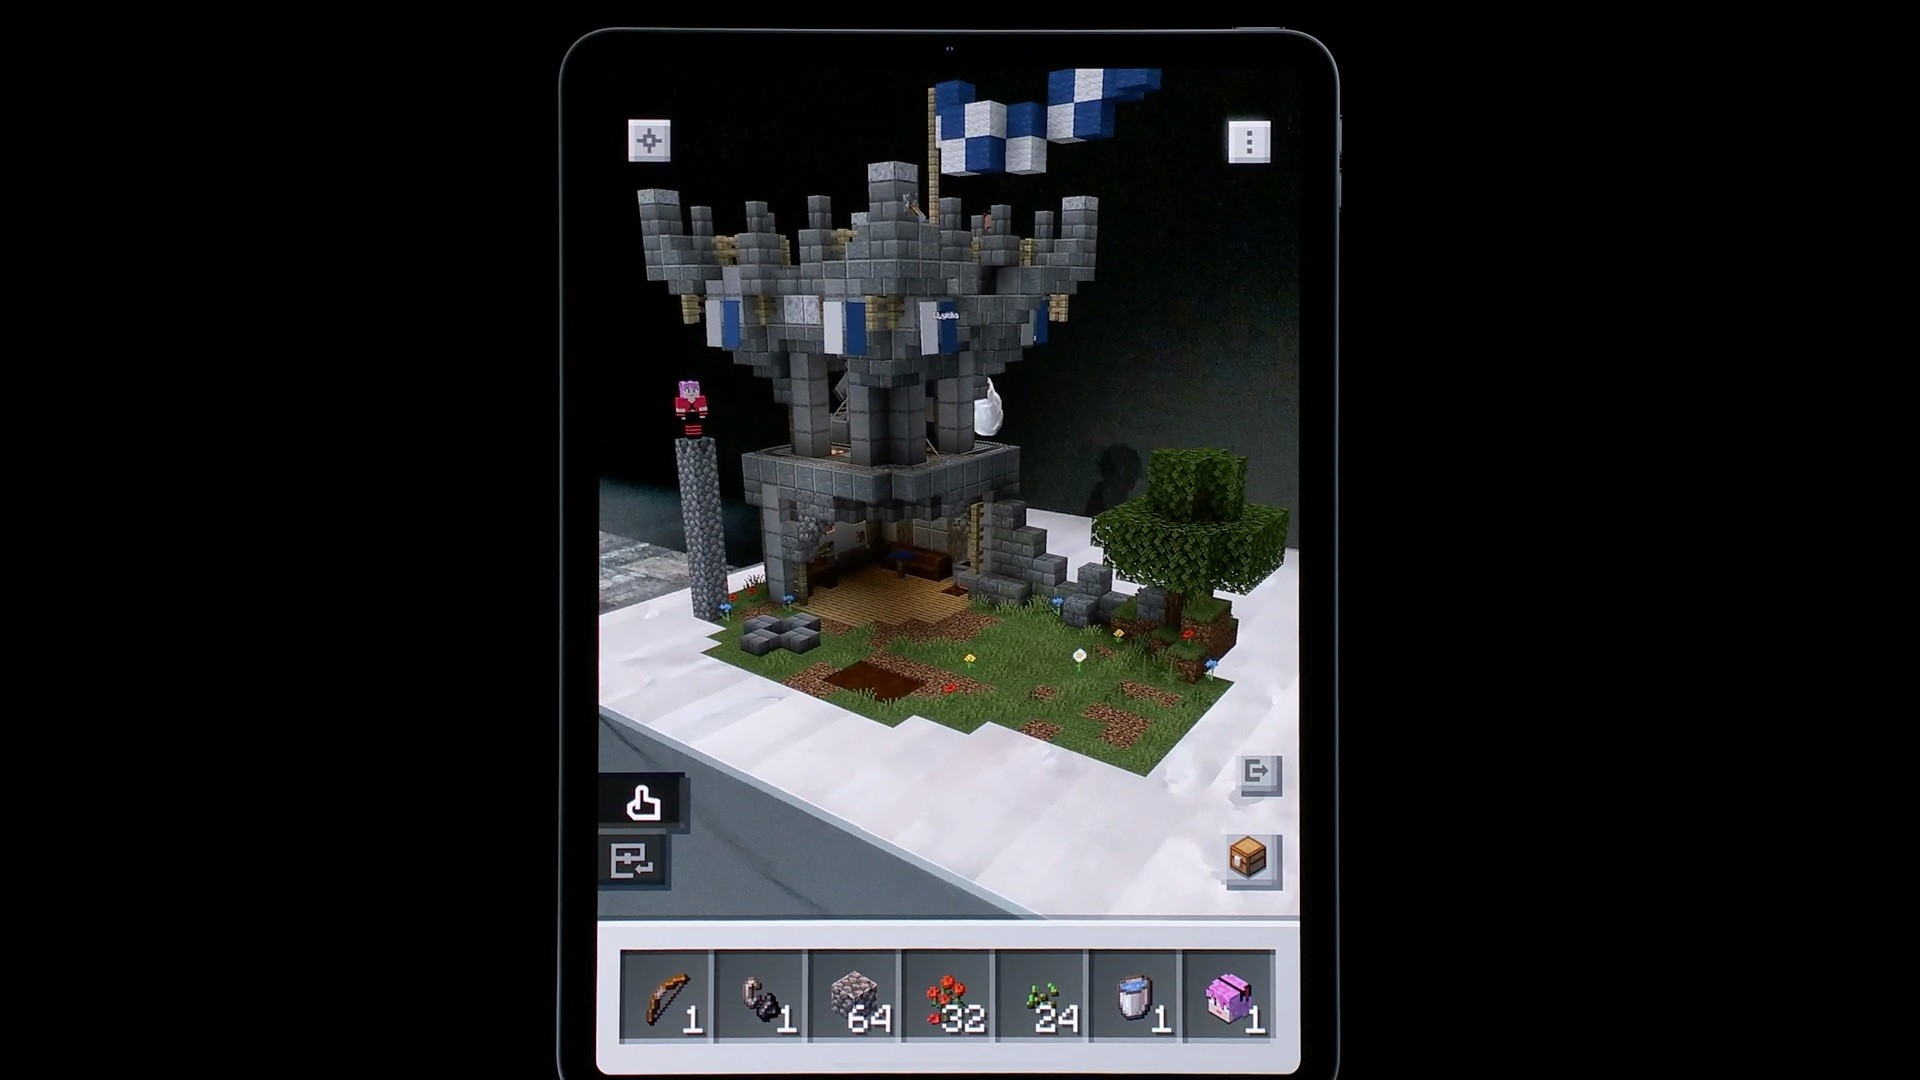 Mojang shows off Minecraft Earth at WWDC, powered by ARKit 3 - Neowin